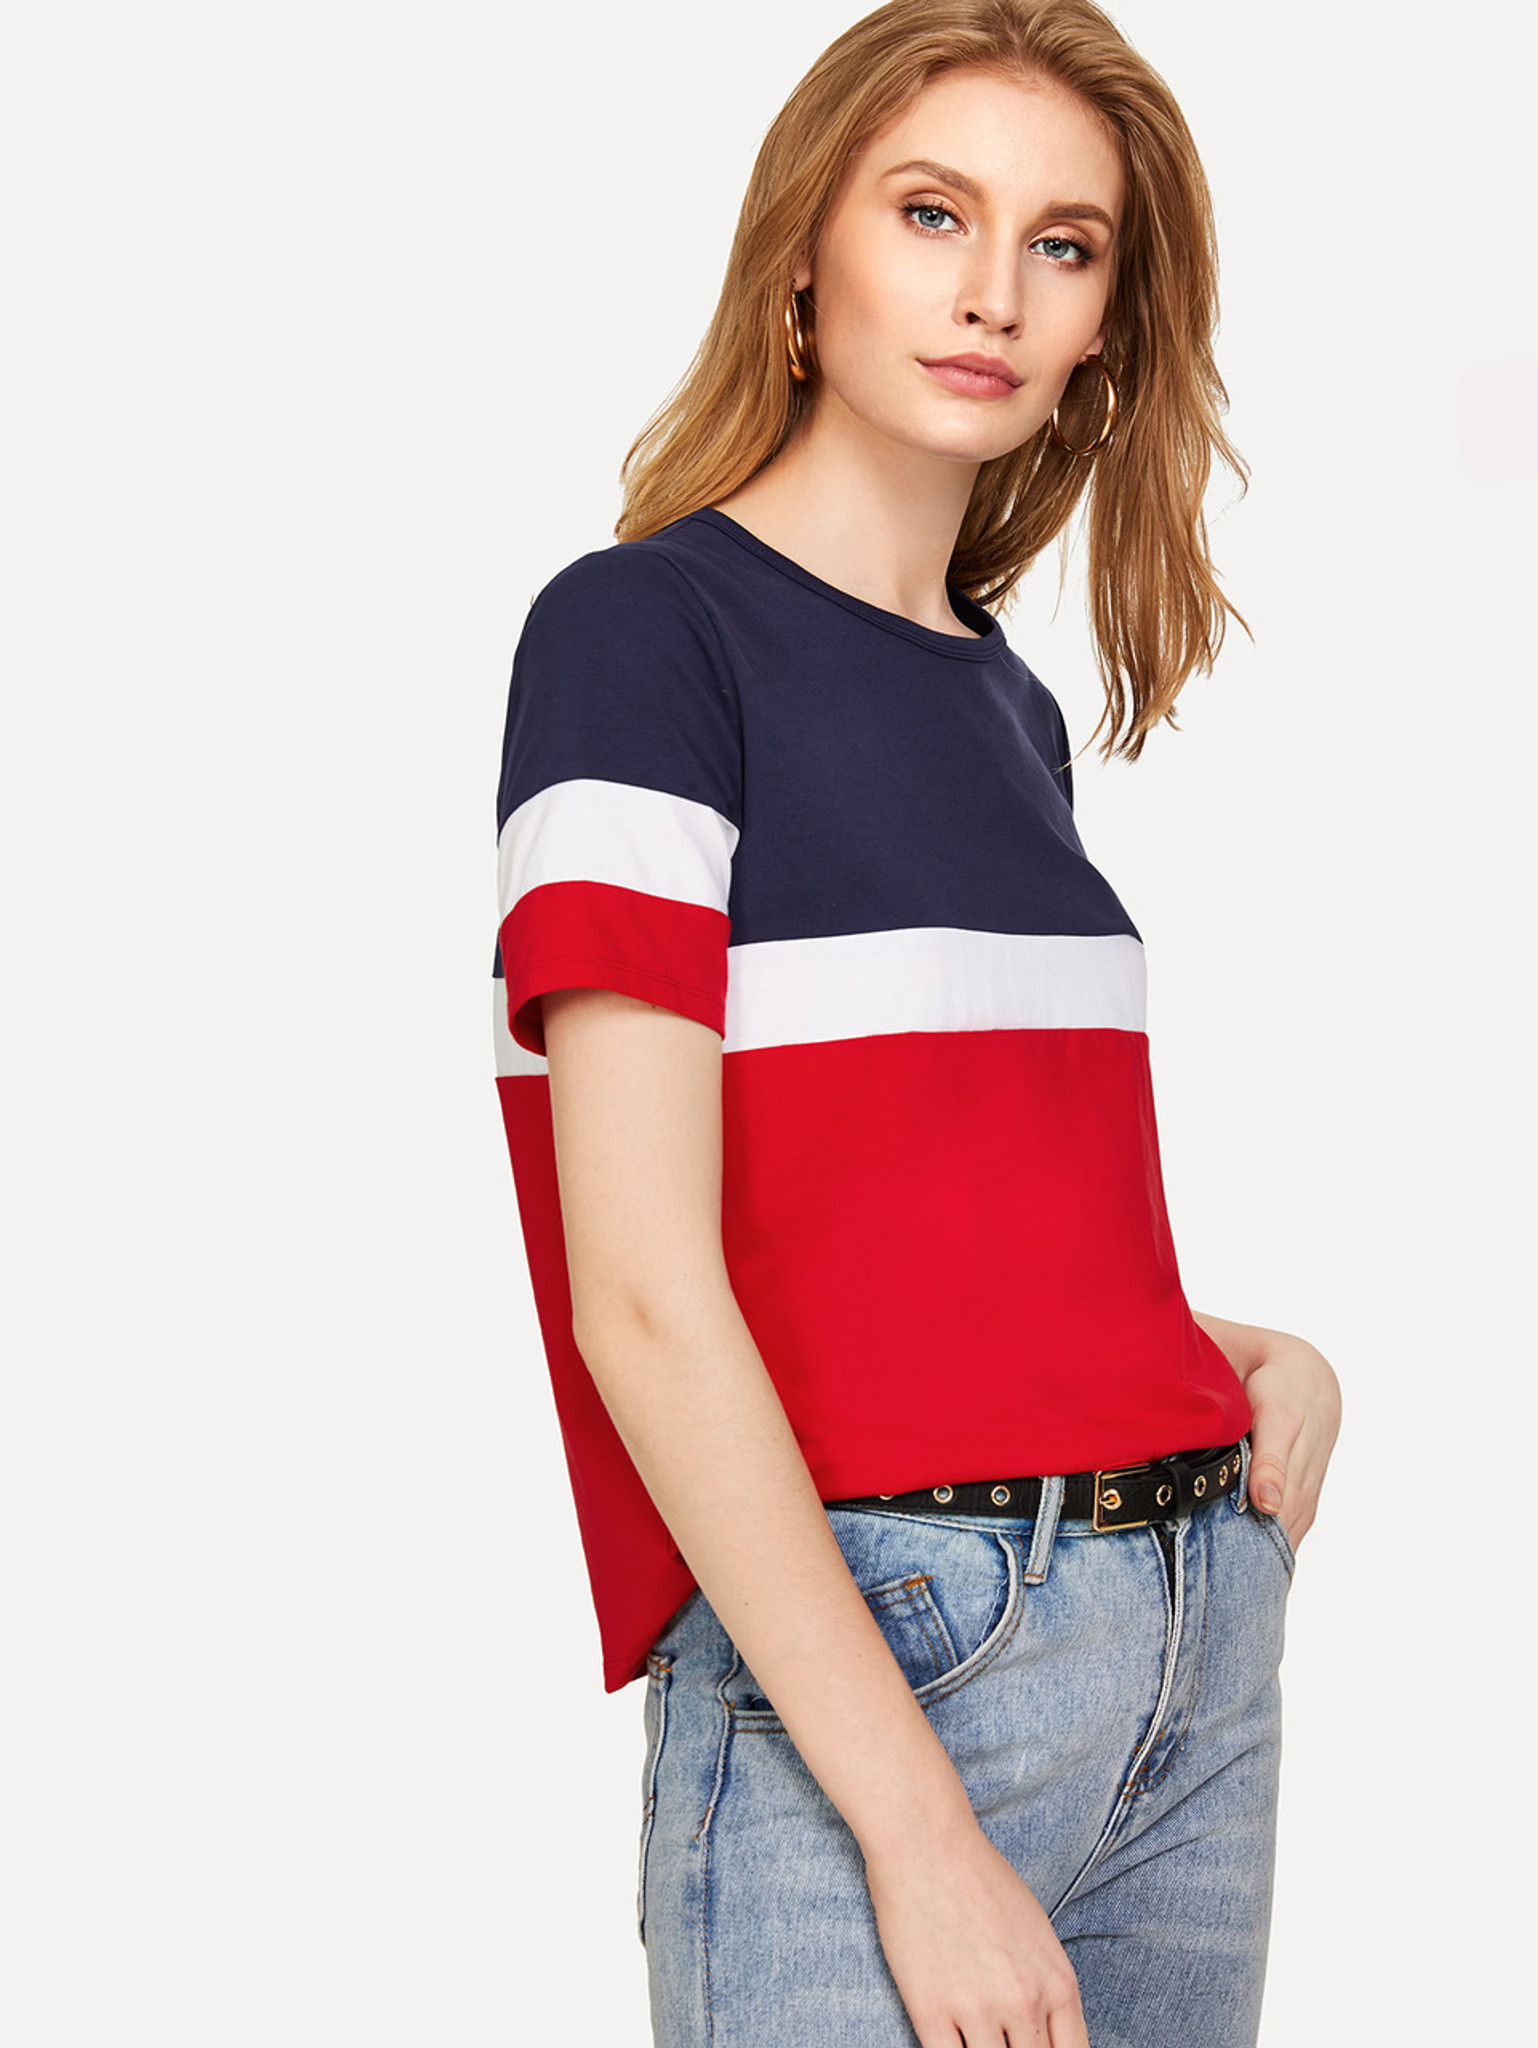 Fifth Avenue Womens JISK Color Block T-Shirt - Red and Blue